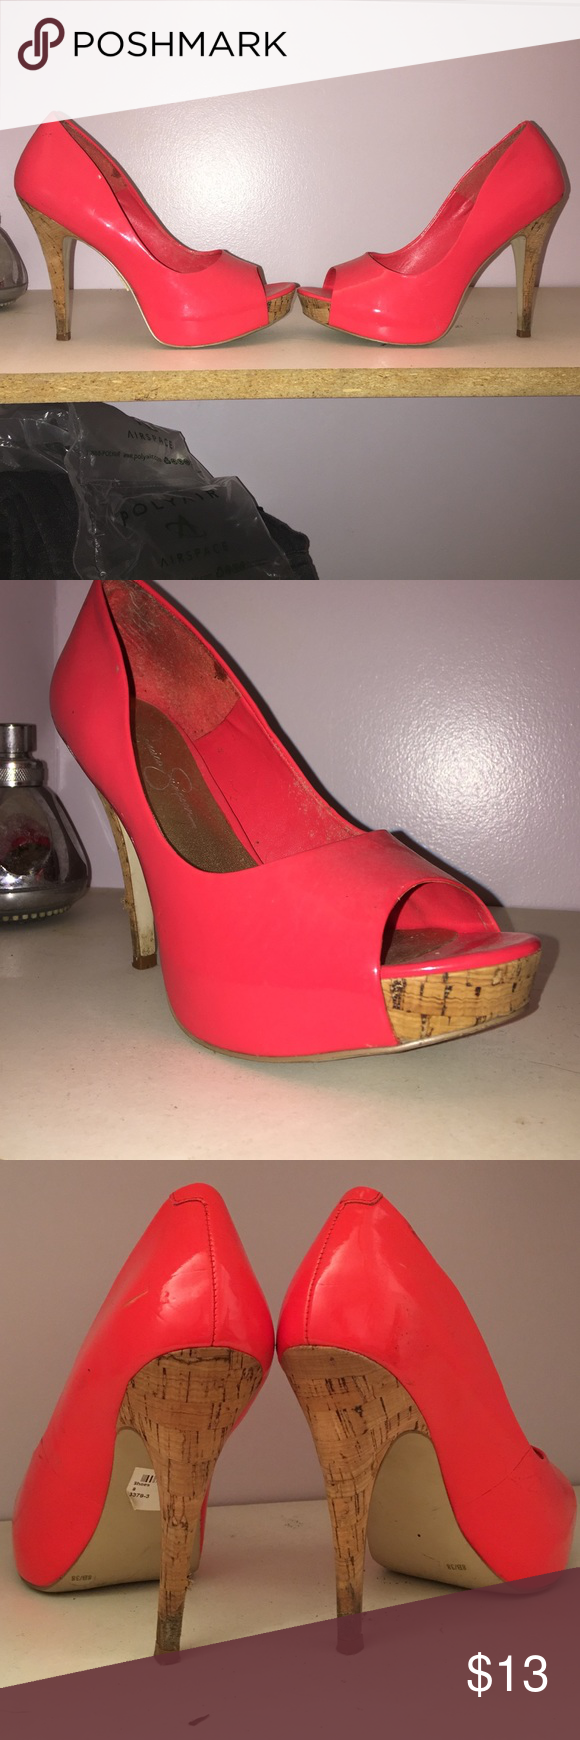 Jessica Simpson heels Bright coral pink stilettos, size 8 OBO Jessica Simpson Shoes Heels